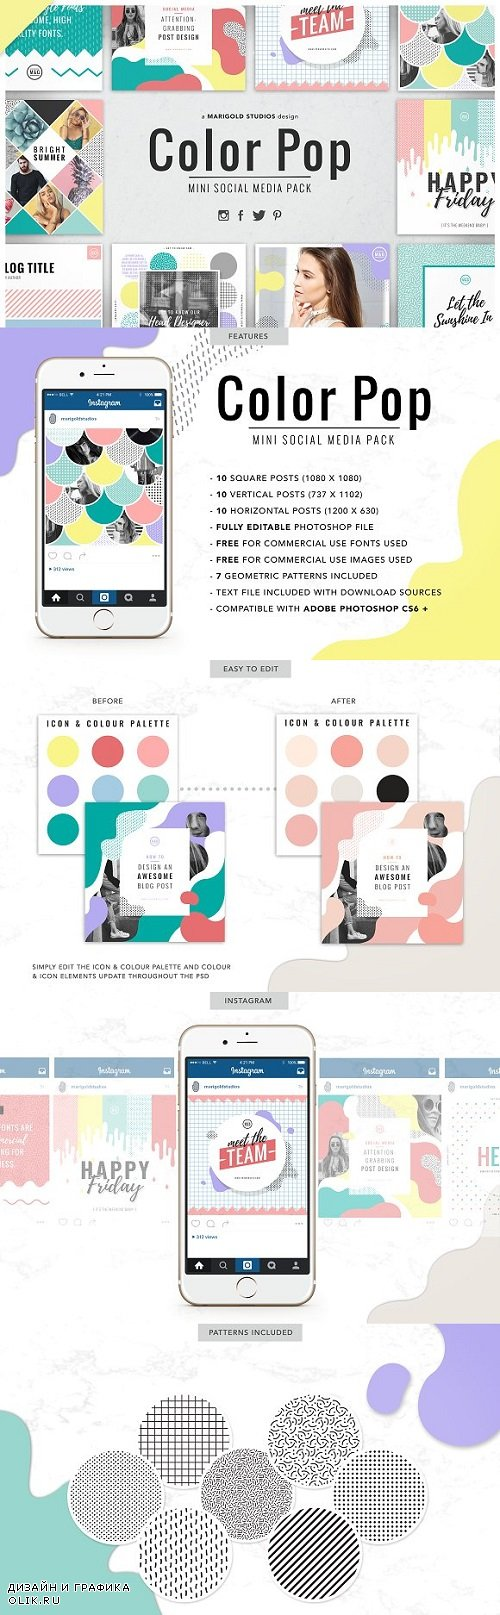 Mini Color Pop Social Media Pack - 1585776